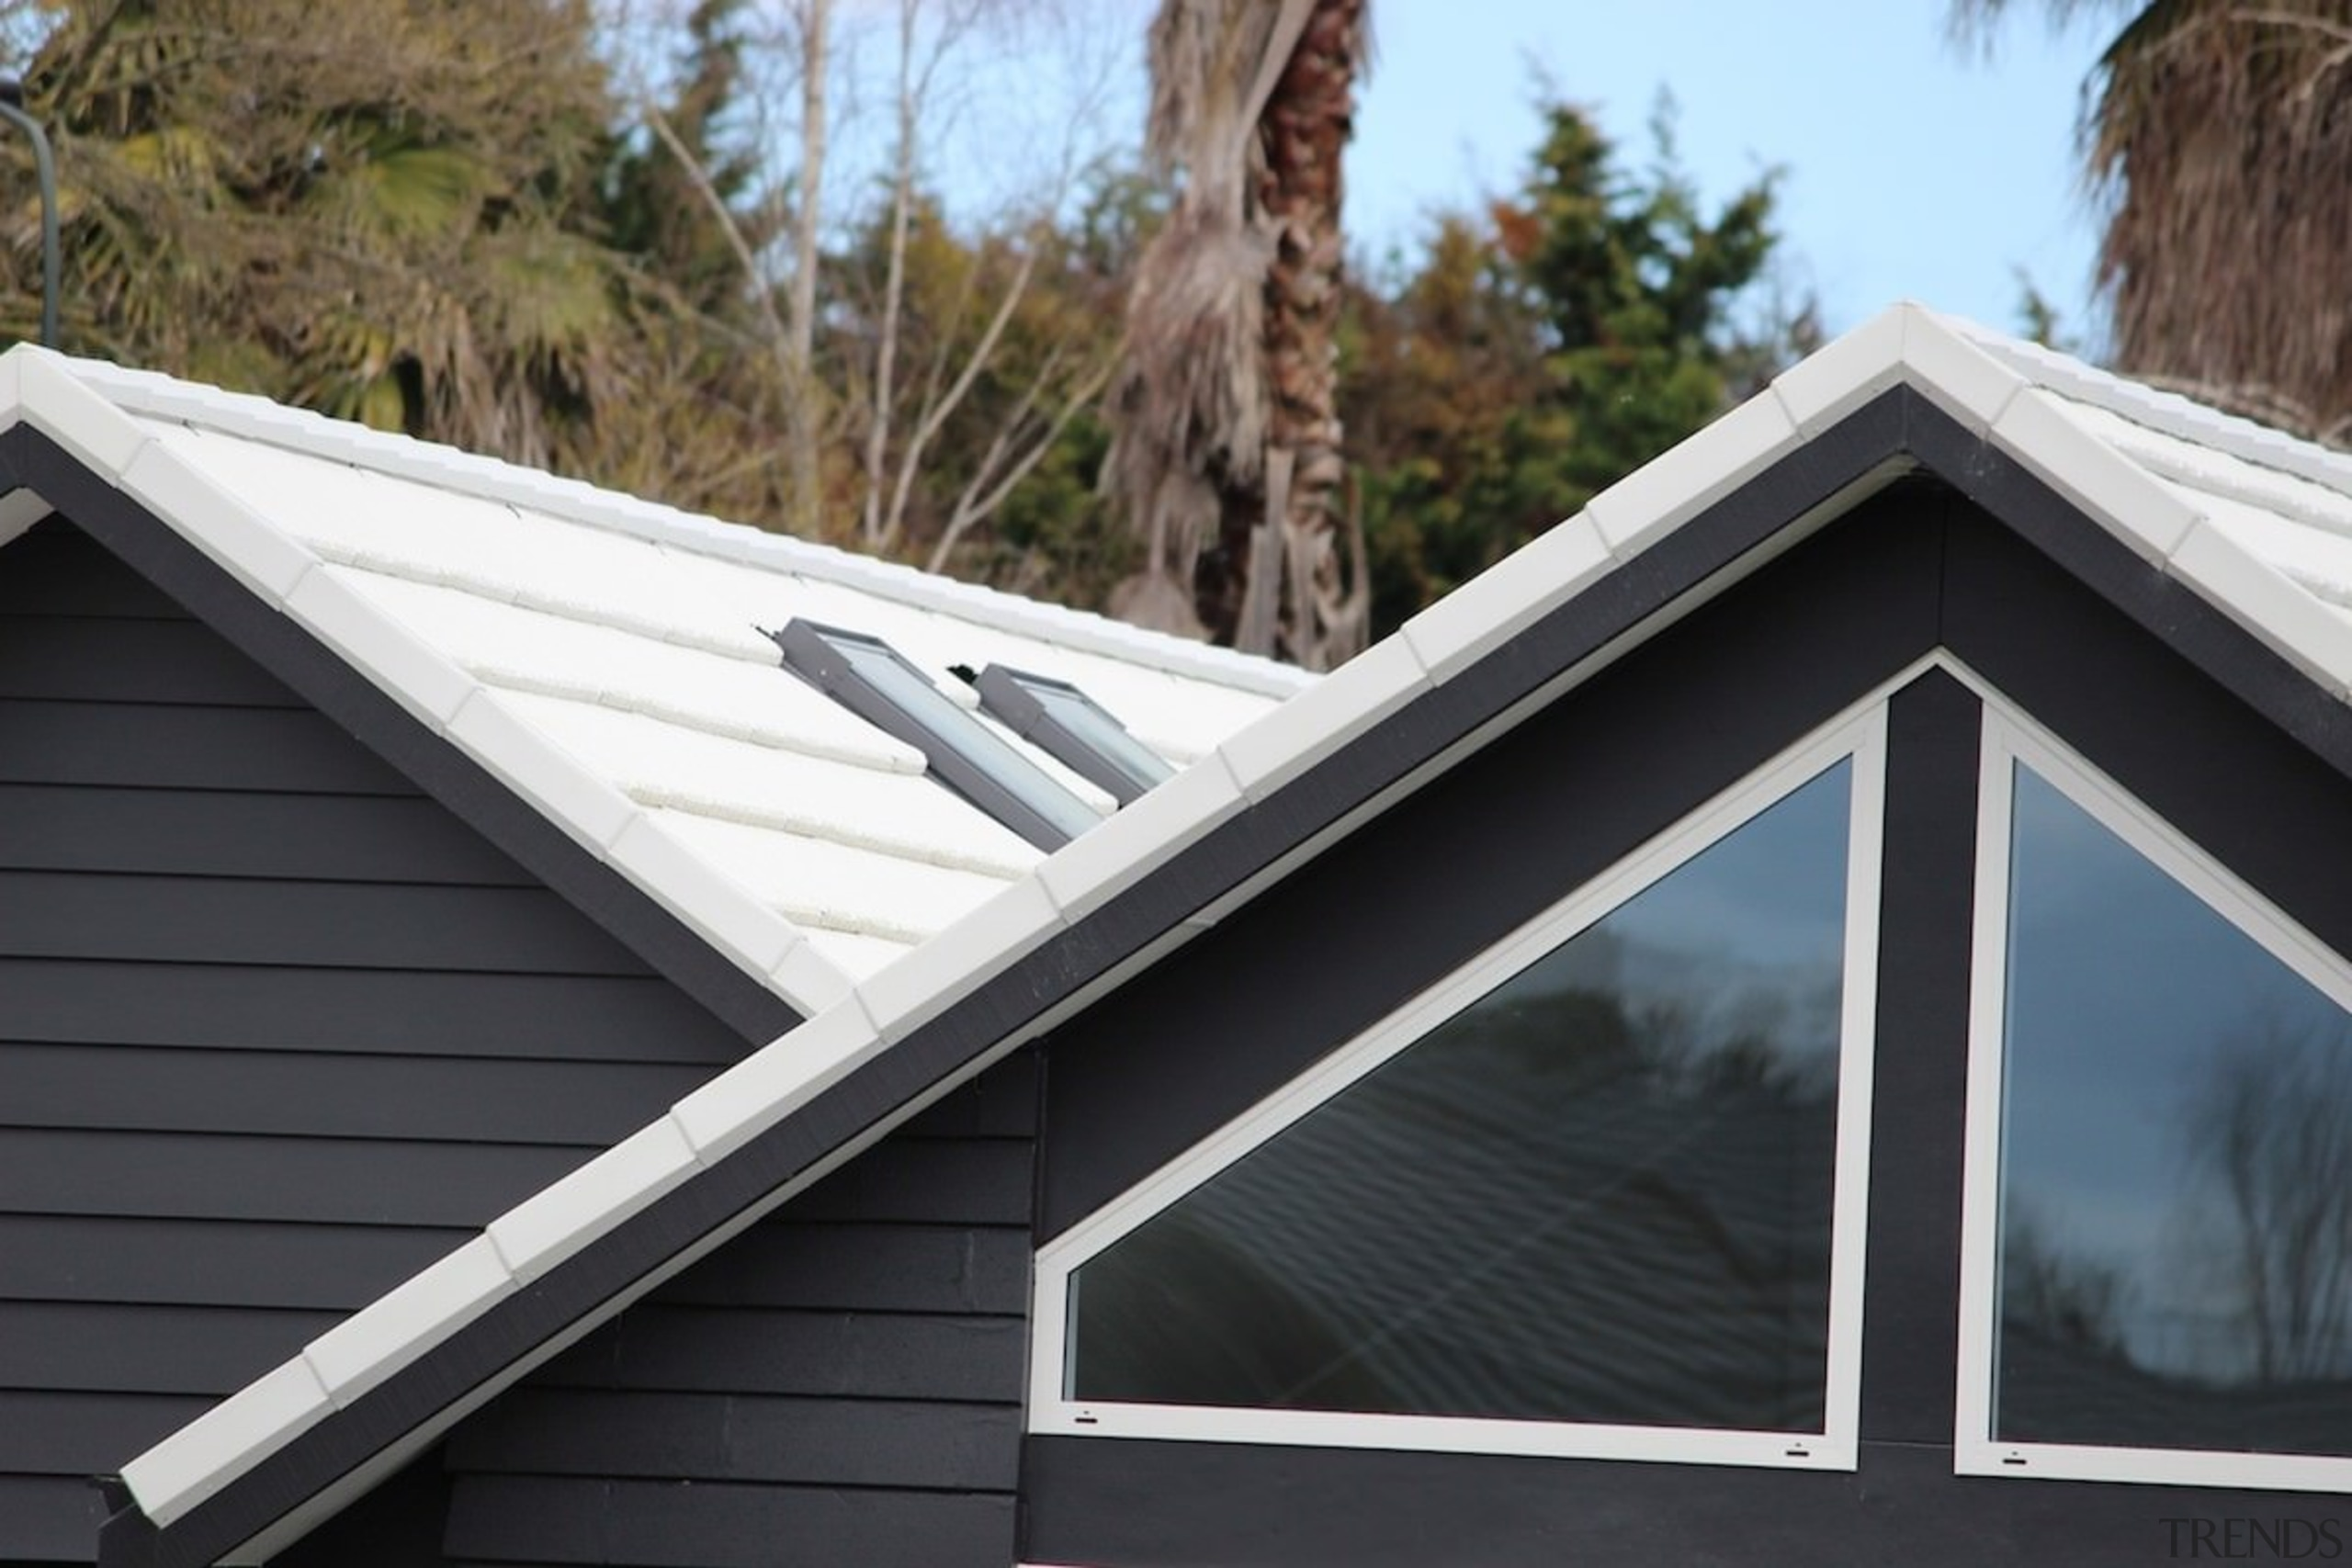 Metrotile metal panels - Metrotile metal panels - daylighting, facade, house, outdoor structure, roof, siding, window, black